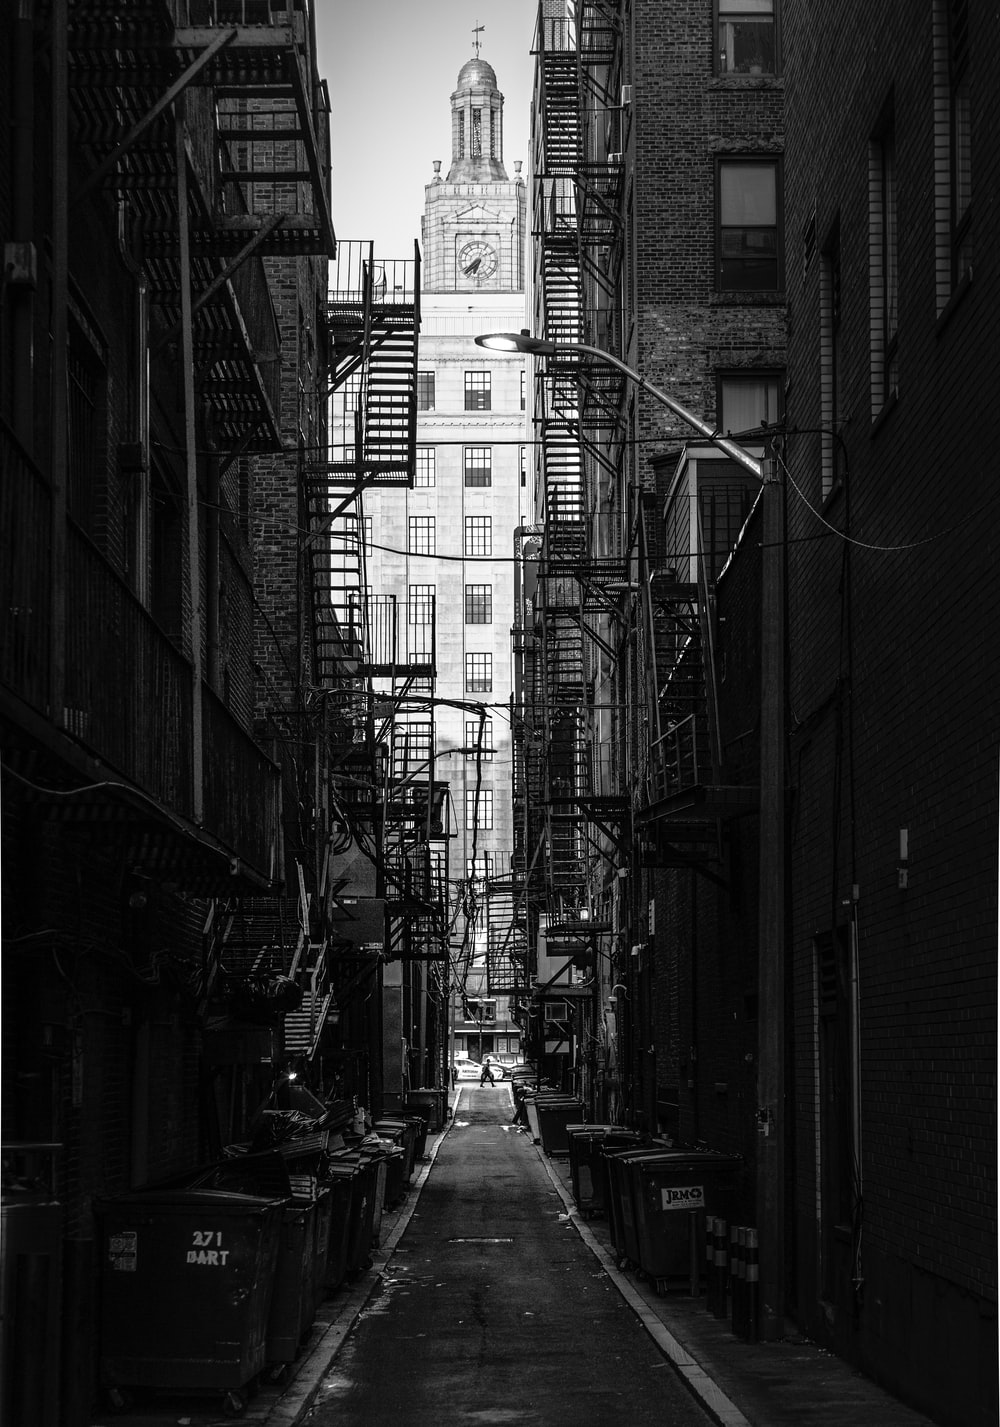 alley photography of walkway during daytime